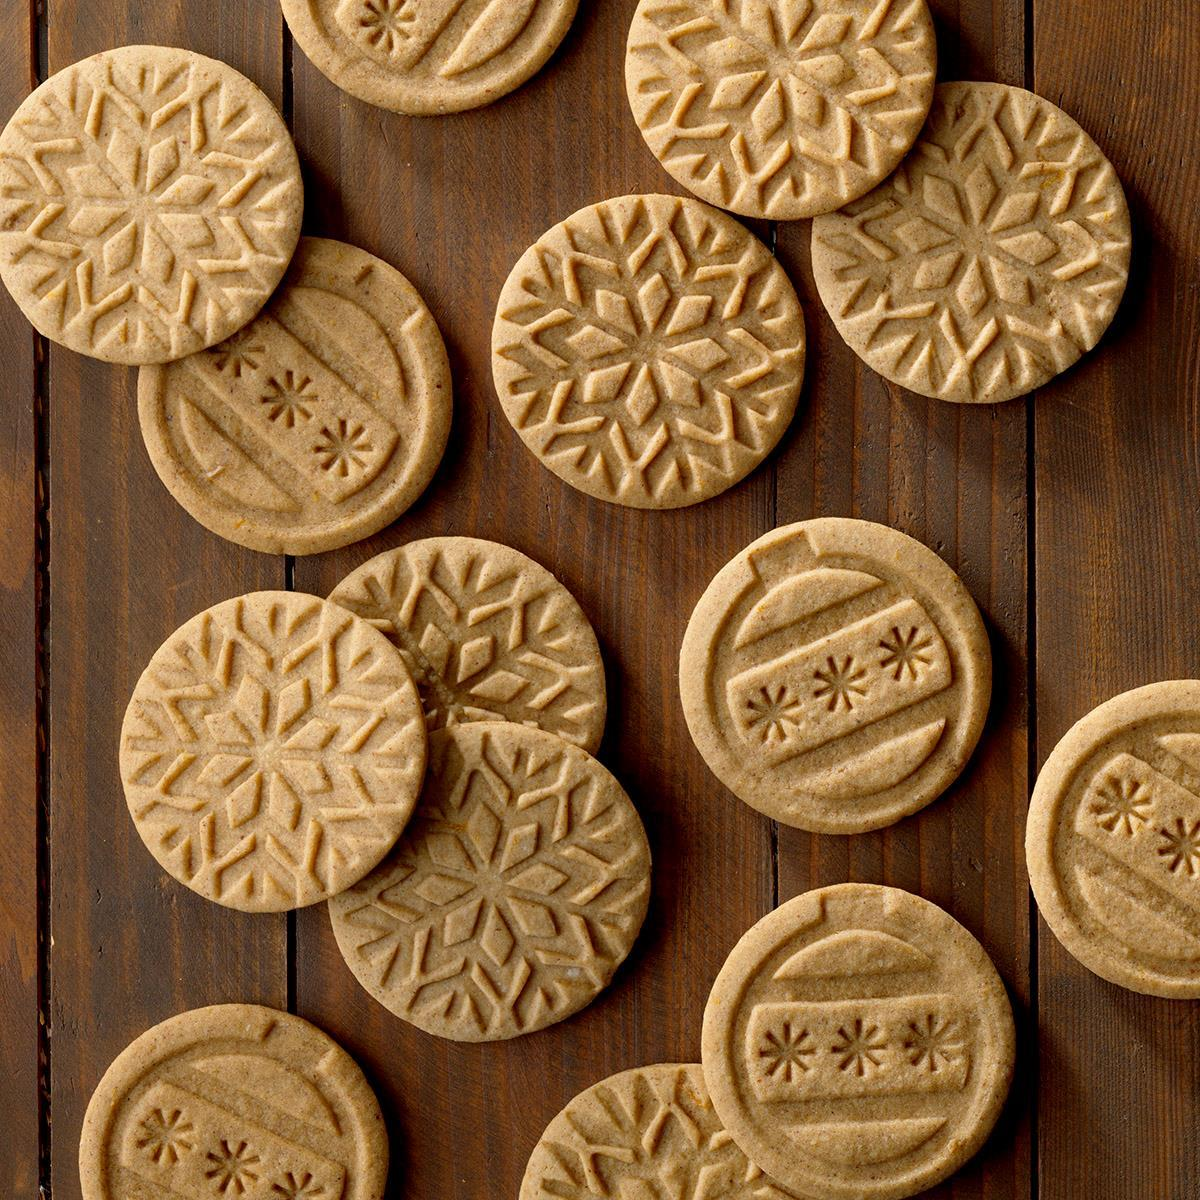 Dutch Speculaas image